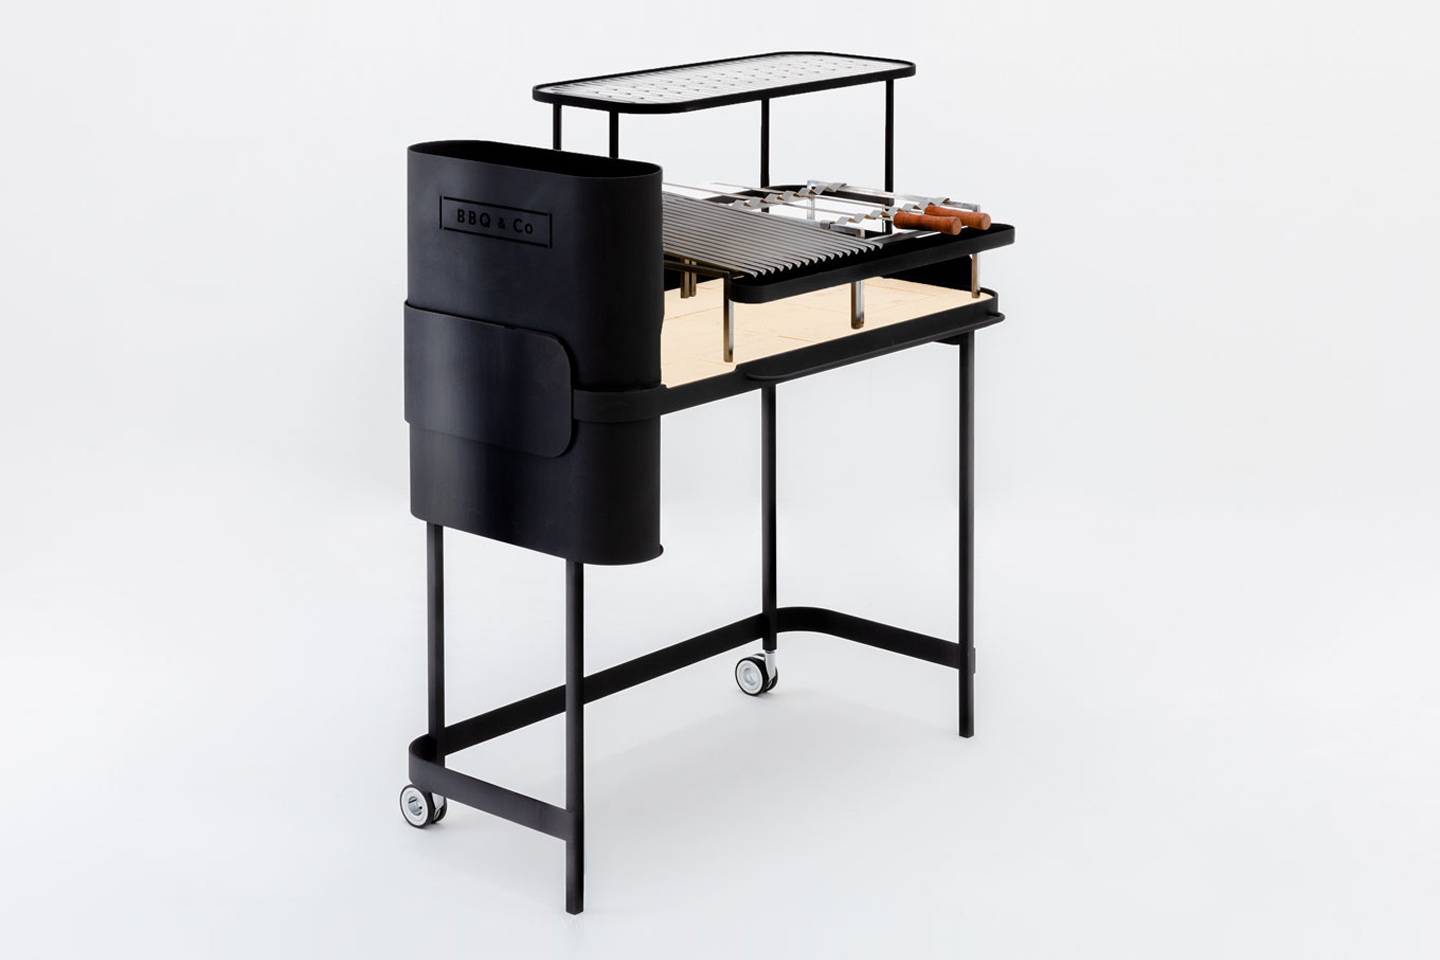 This Japanese wood-fired BBQ grill is a modern, minimal tool every cook wants!